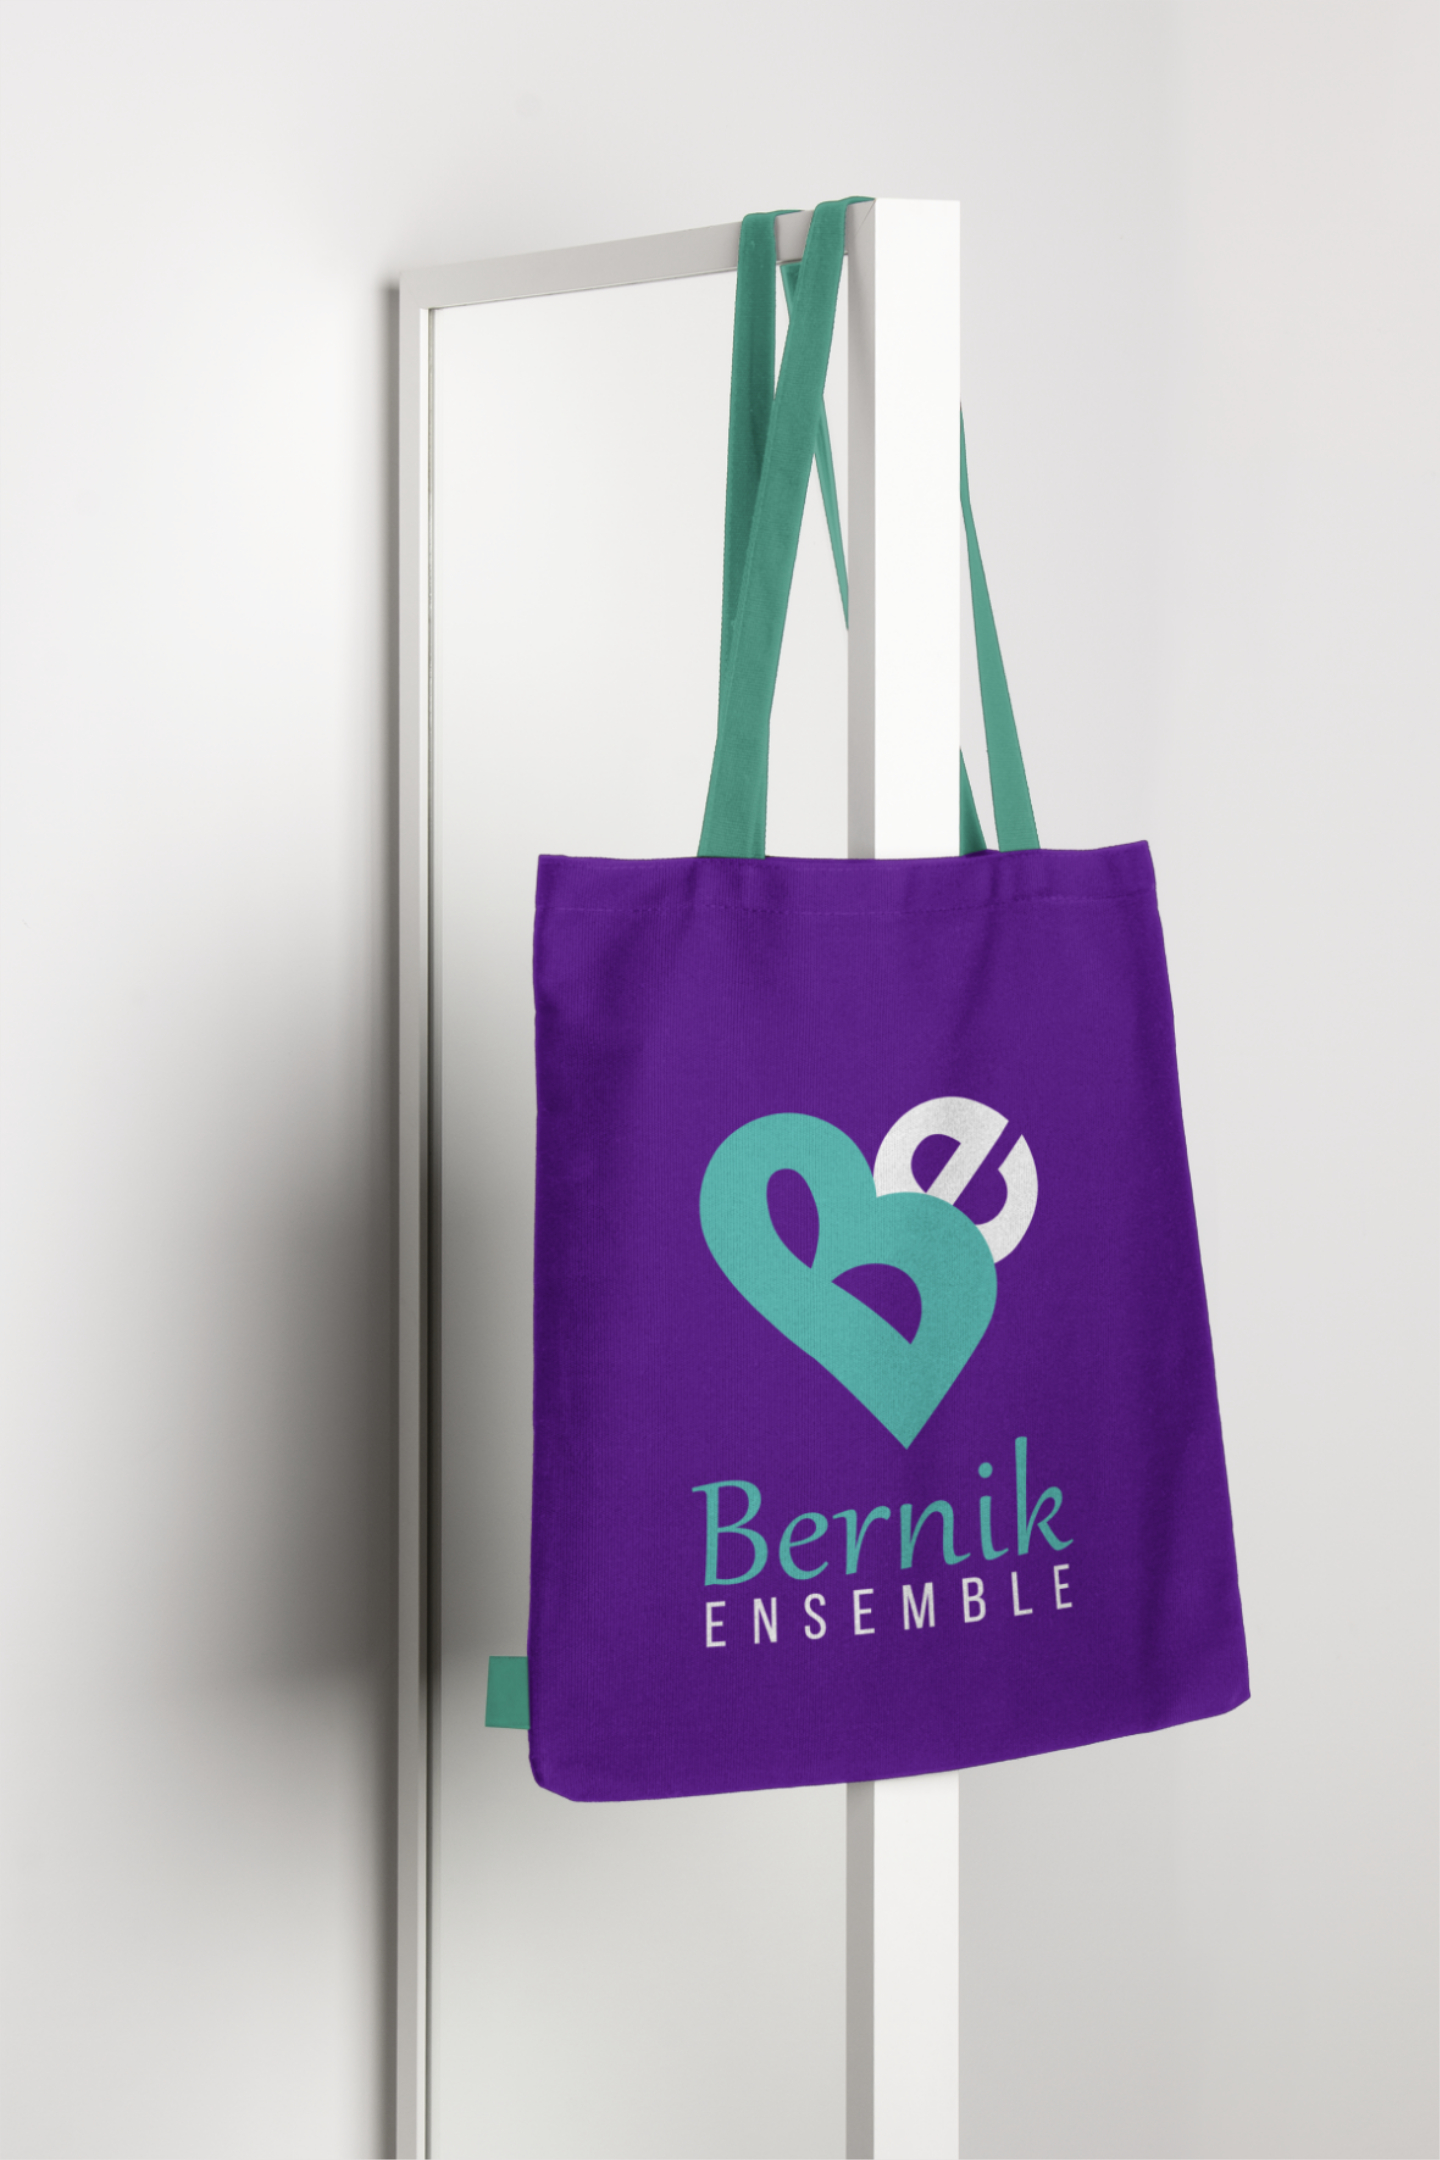 bernik-ensemble-tote-bag-mockup.jpeg